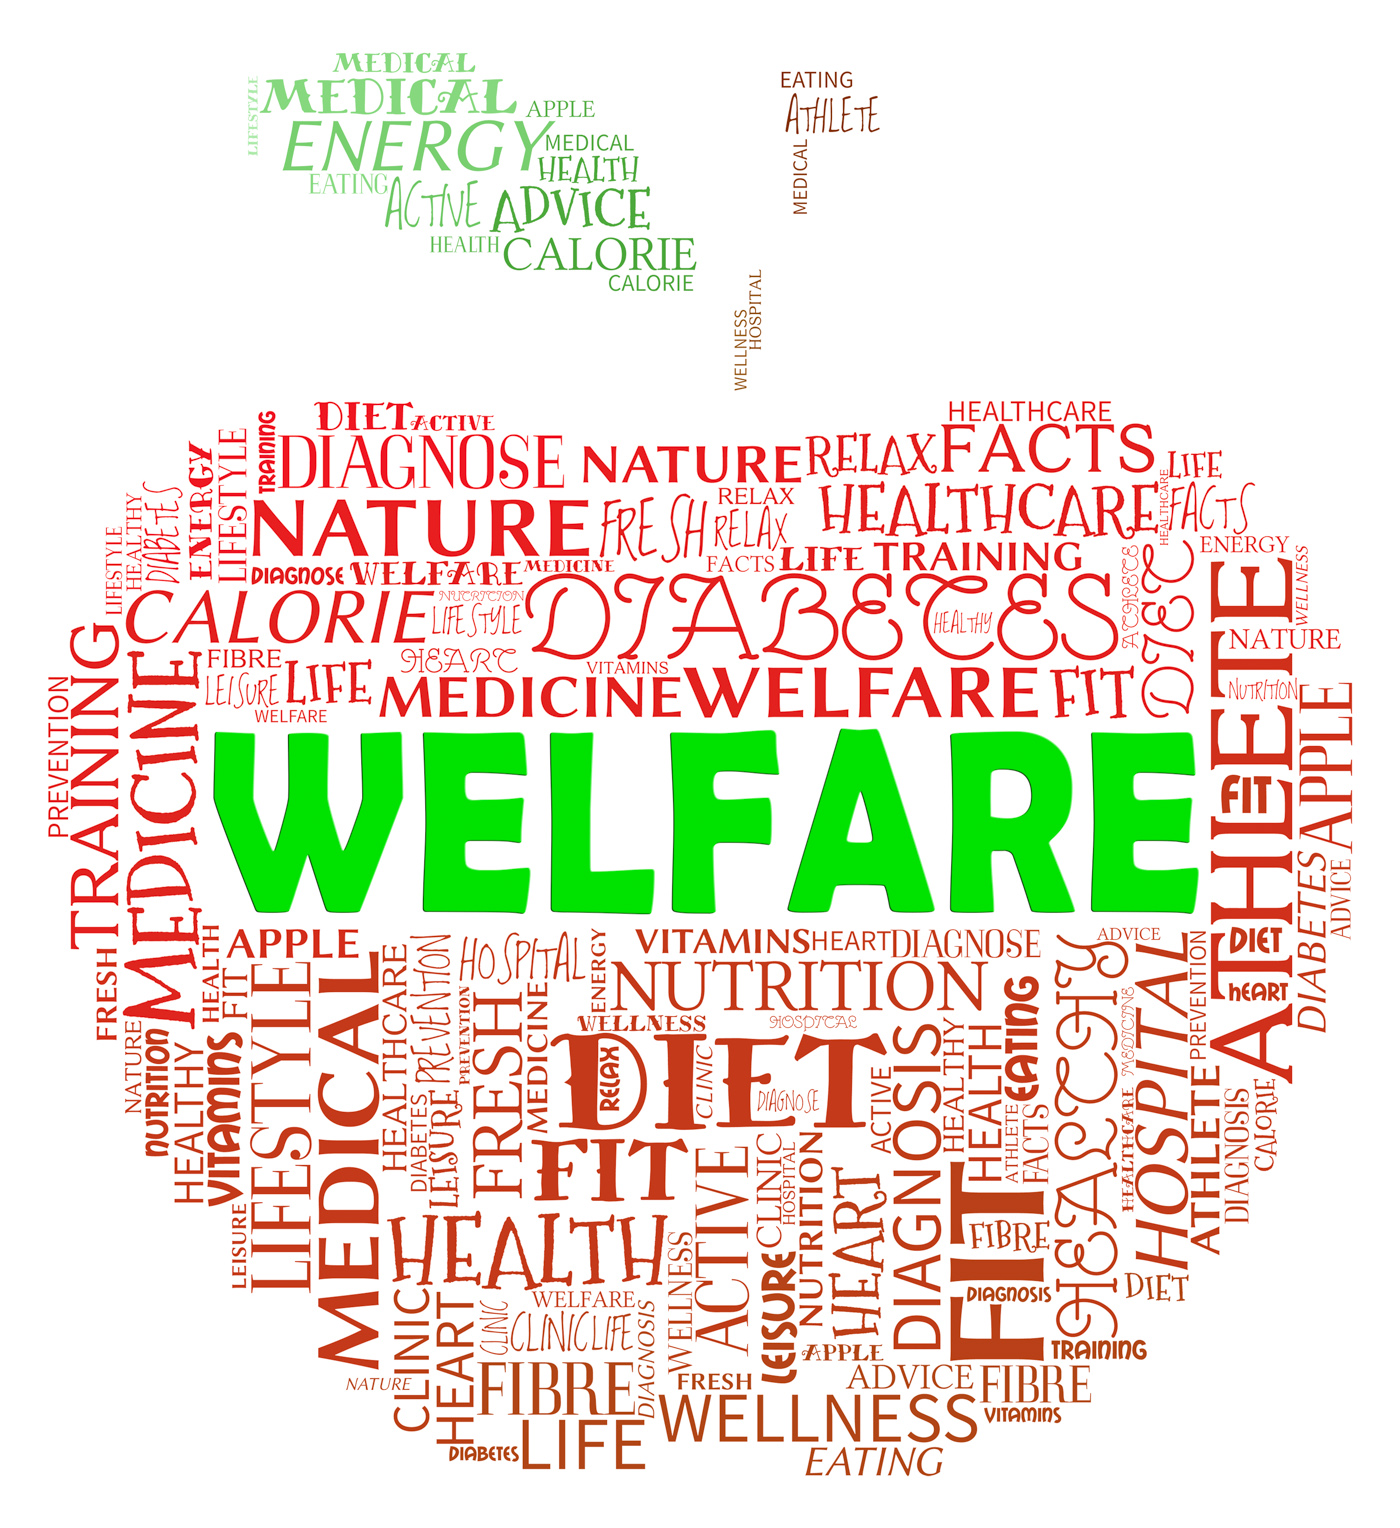 Welfare apple means health check and care photo